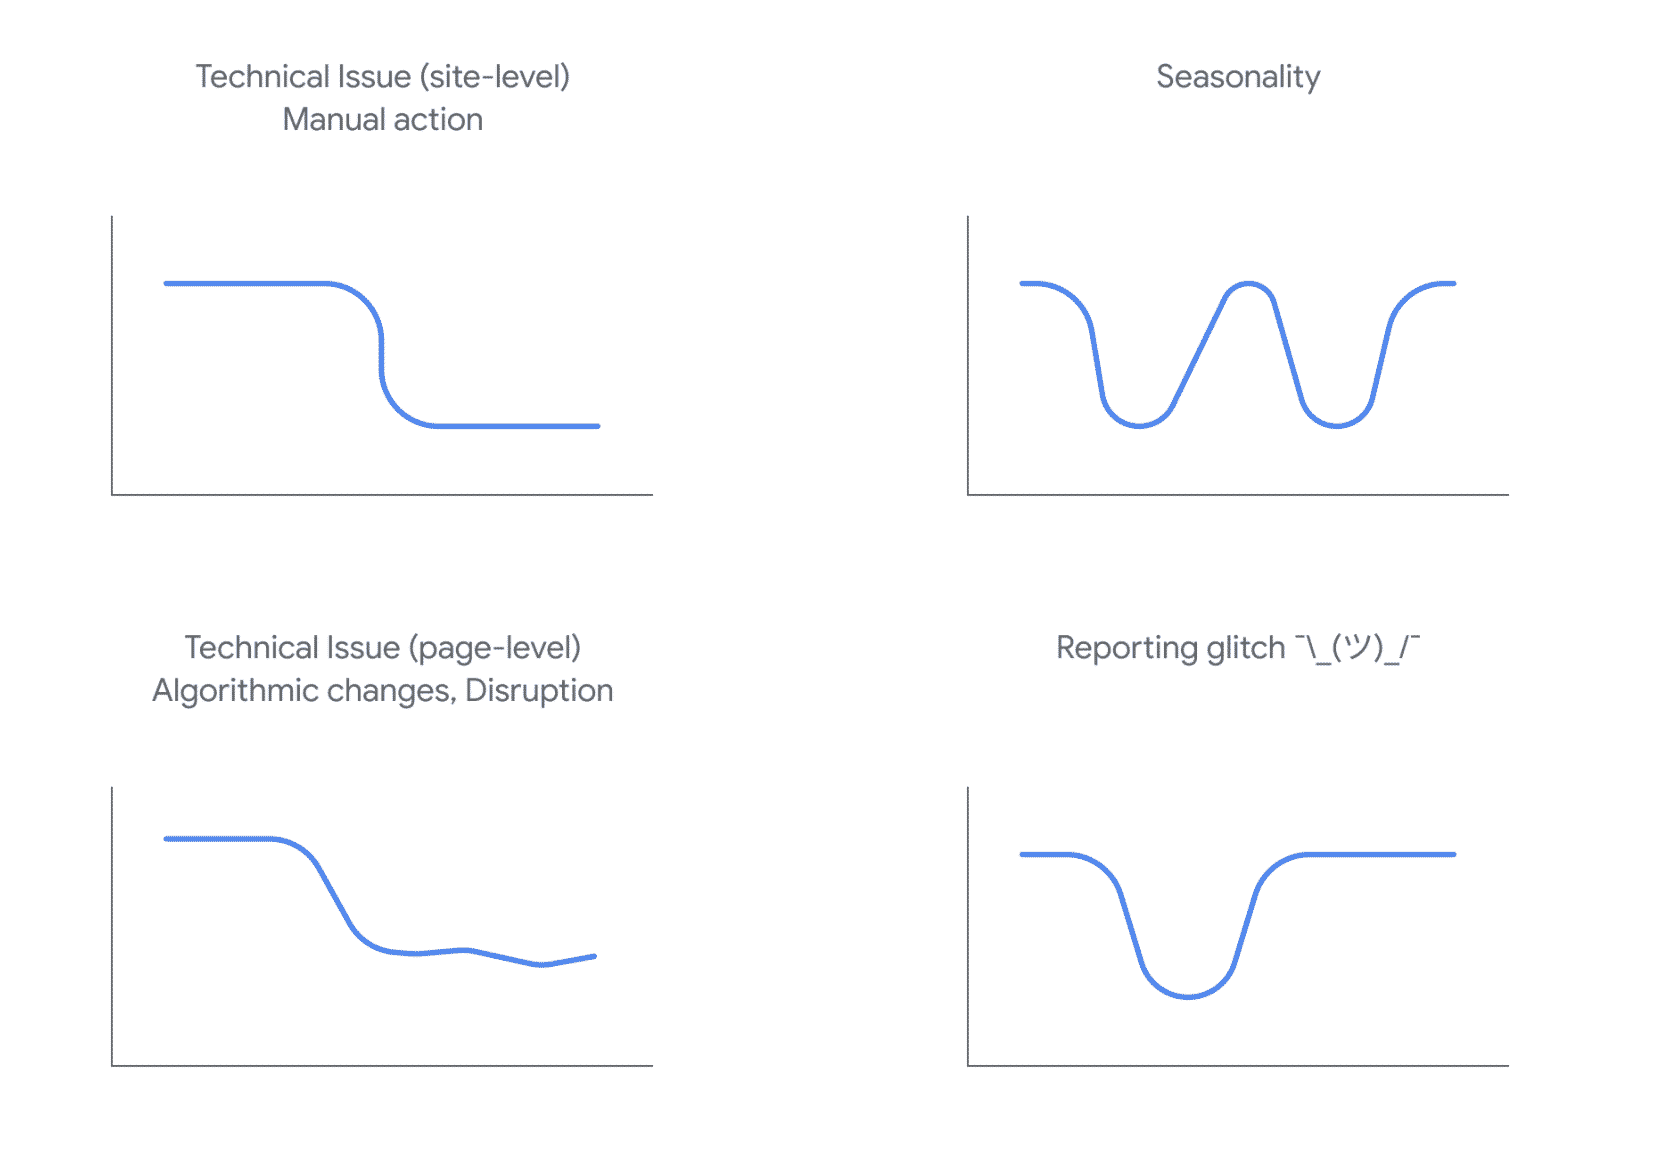 Google's illustrations of different types of drops in organic search traffic